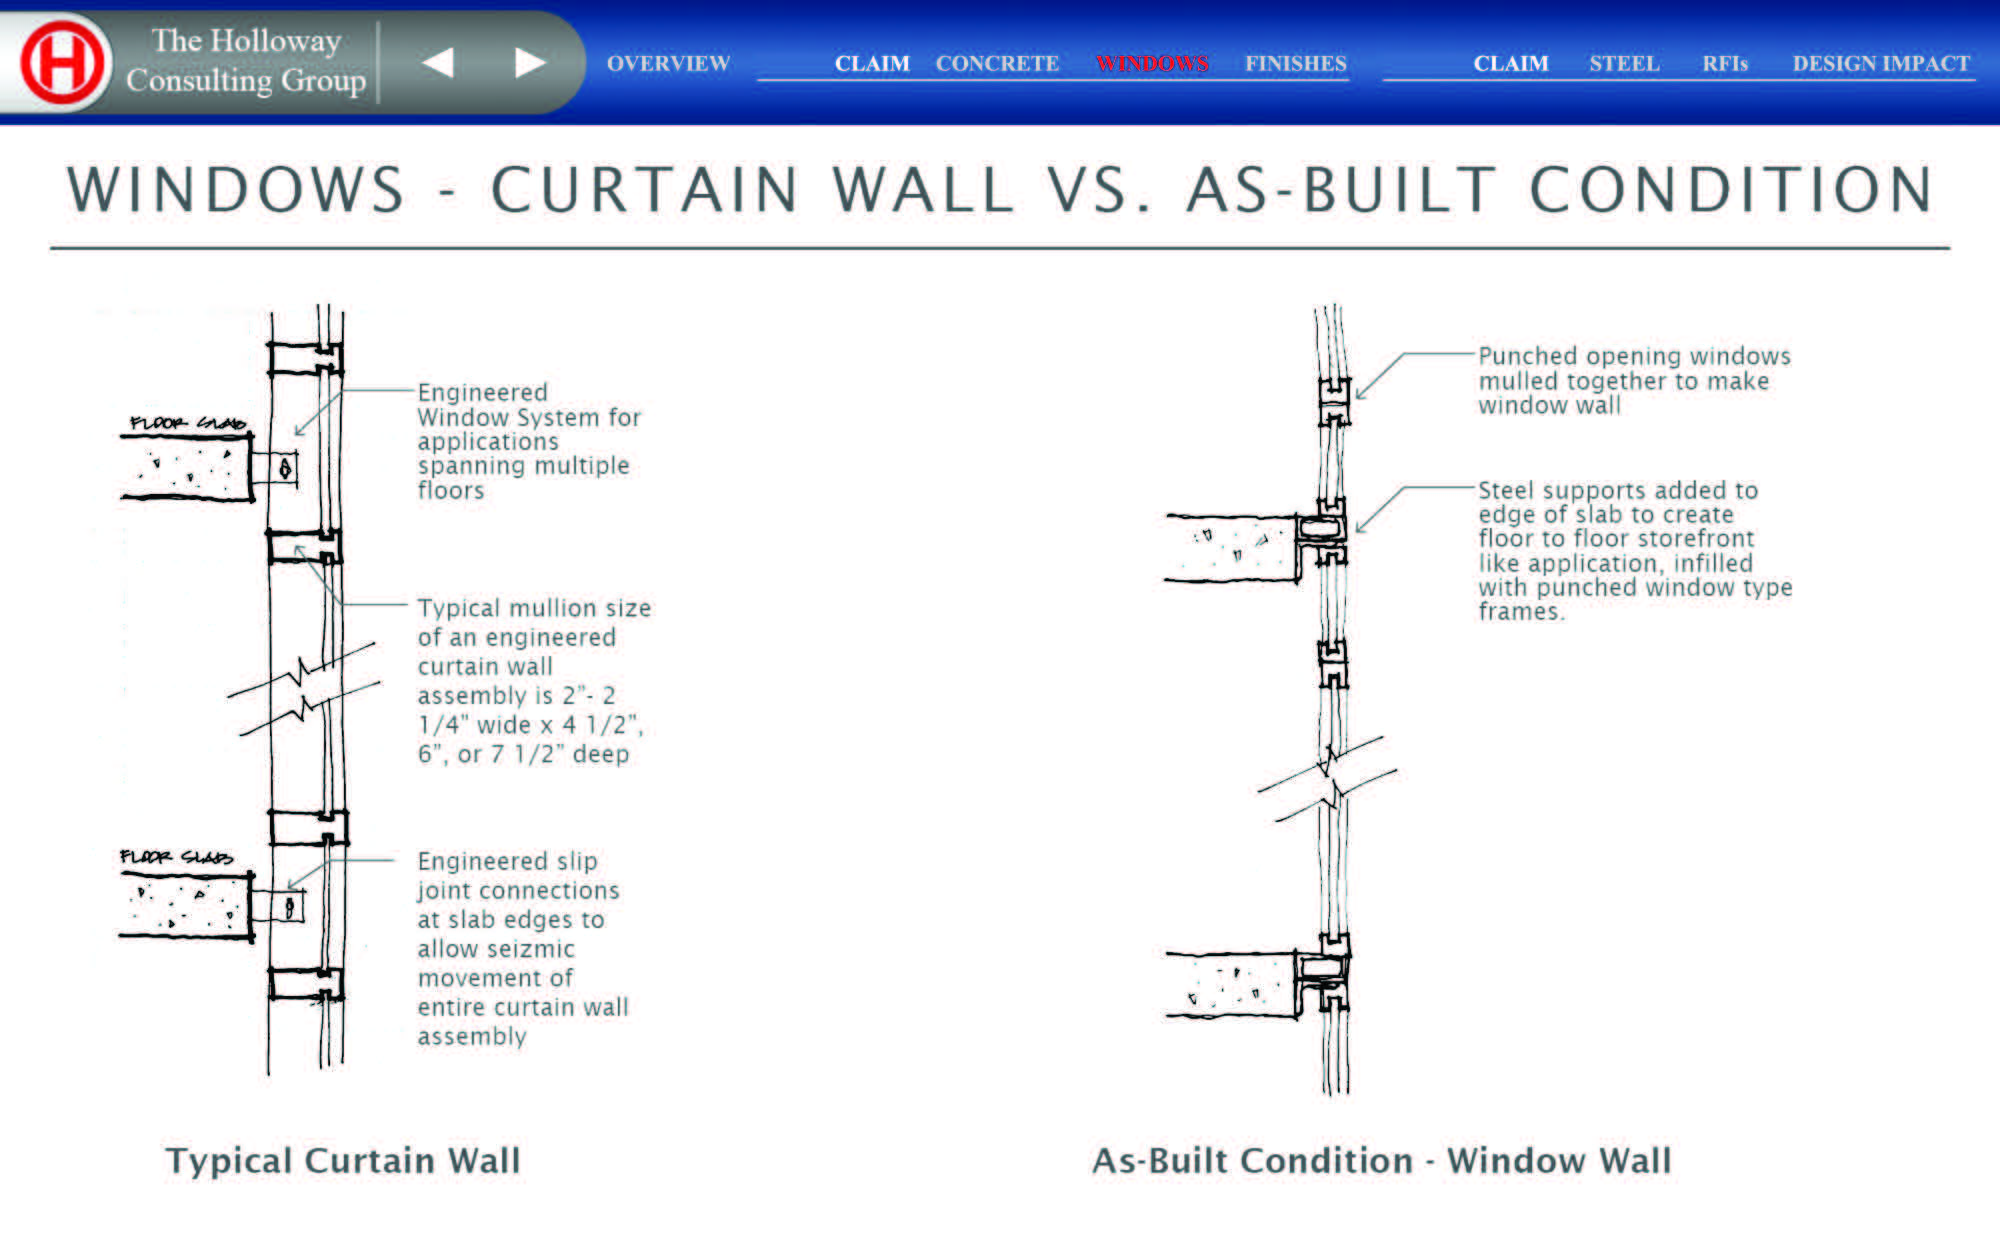 Difference Between Storefront And Curtain Wall : Construction claims consultant expert witness archive